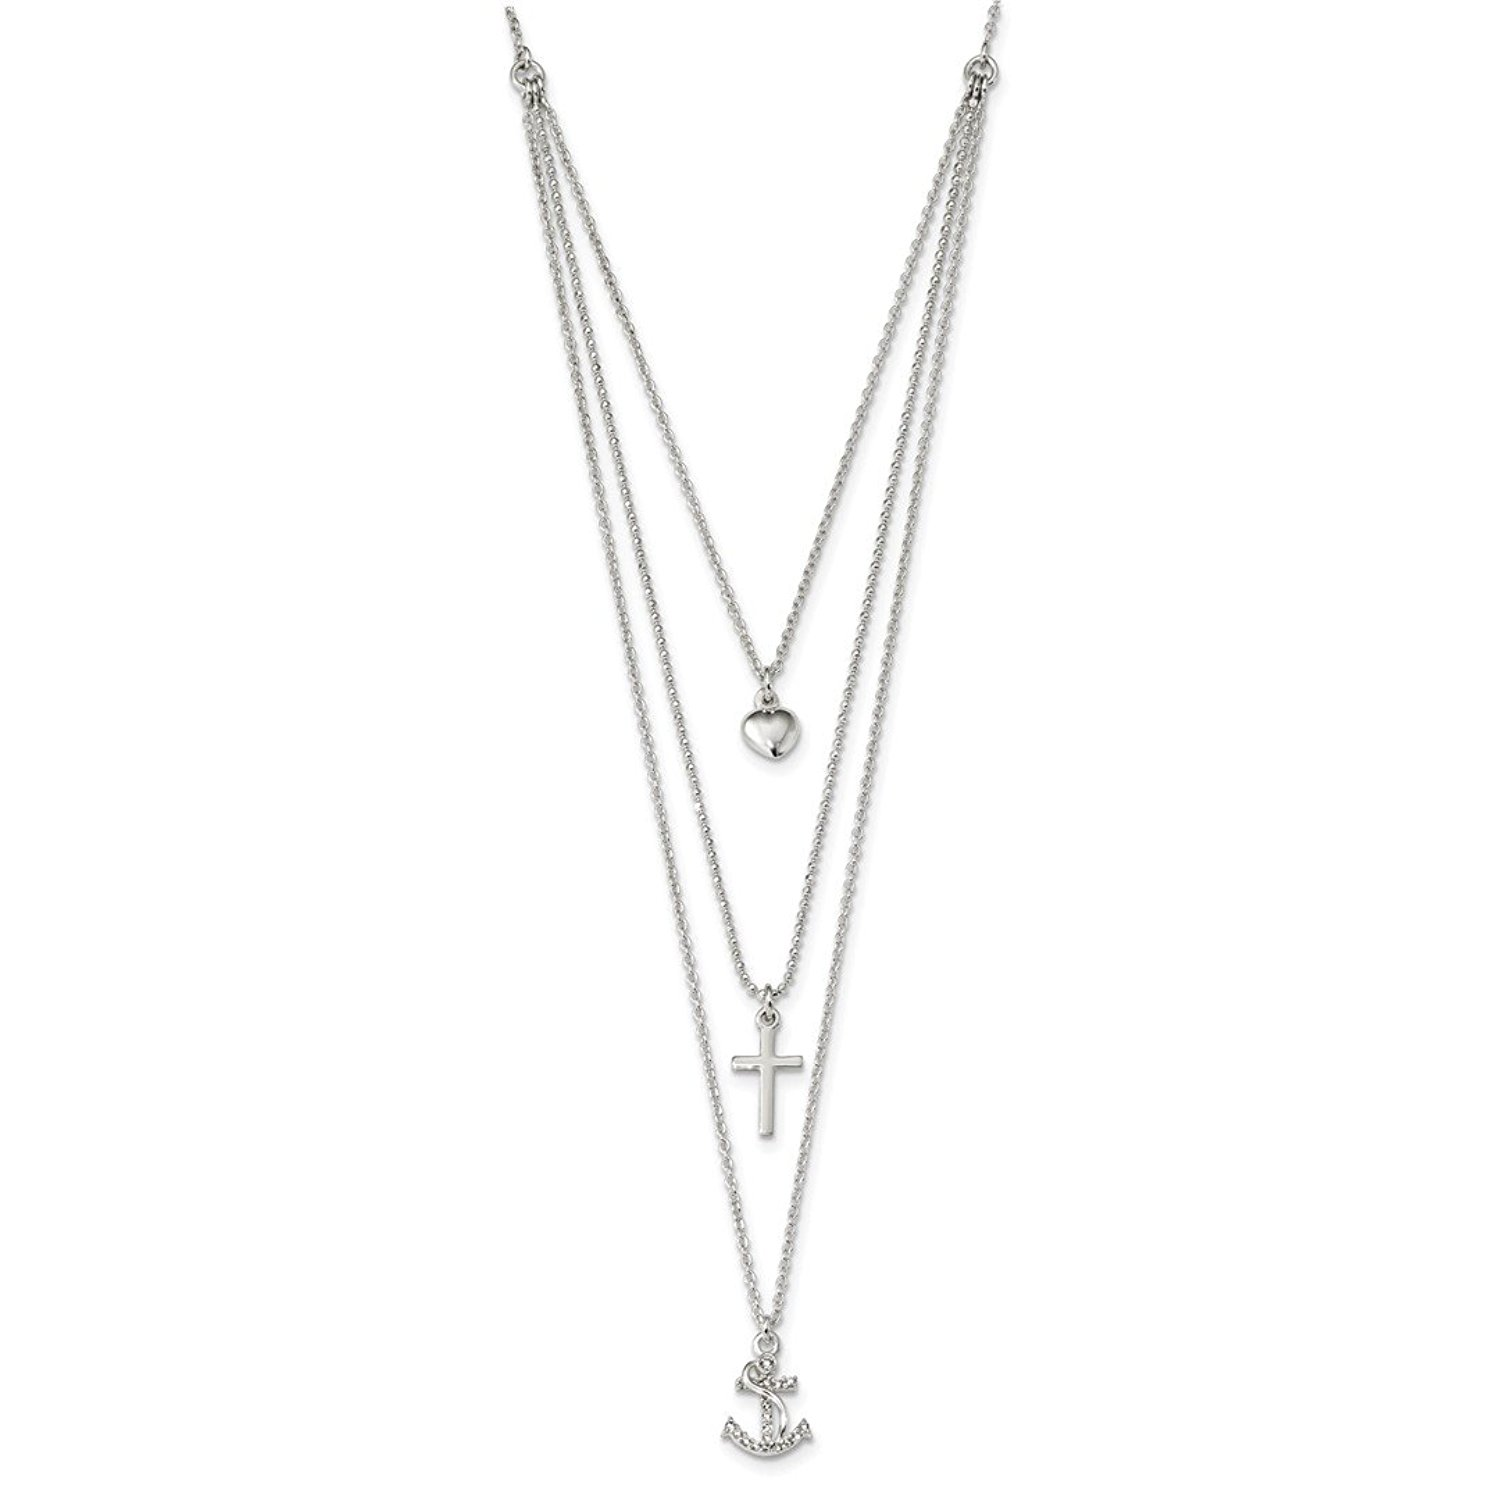 925 Sterling Silver Cubic Zirconia Cz Love You Forever 18in Chain Necklace Pendant Charm S//love Inspirational Fine Jewelry Gifts For Women For Her